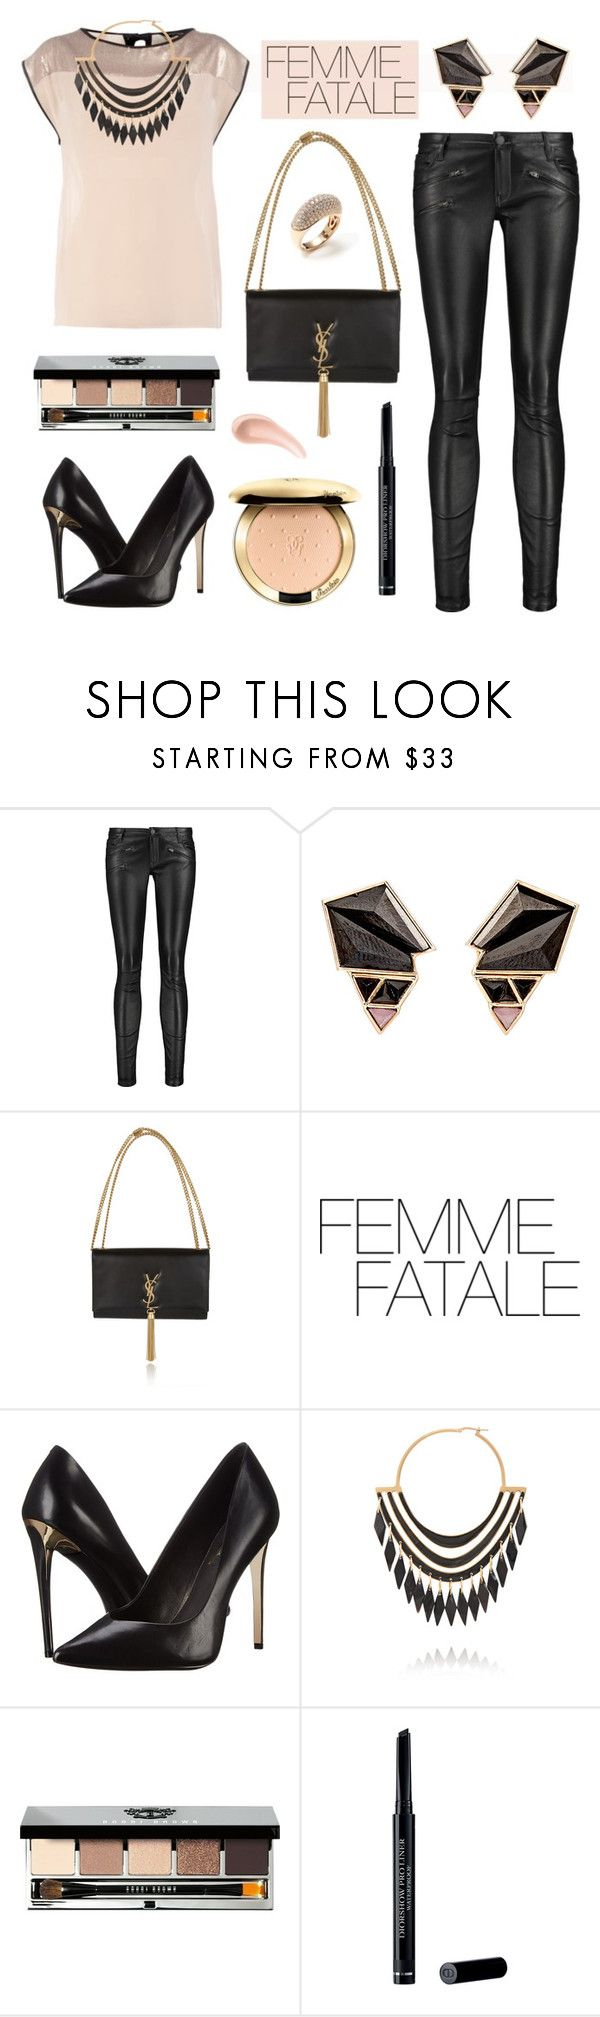 """Femme Fatale"" by yoshigirl28 ❤ liked on Polyvore featuring Kelly Wearstler, Maje, Nak Armstrong, Yves Saint Laurent, Rachel Zoe, Balmain, Bobbi Brown Cosmetics, Christian Dior, Vendoro and NARS Cosmetics"